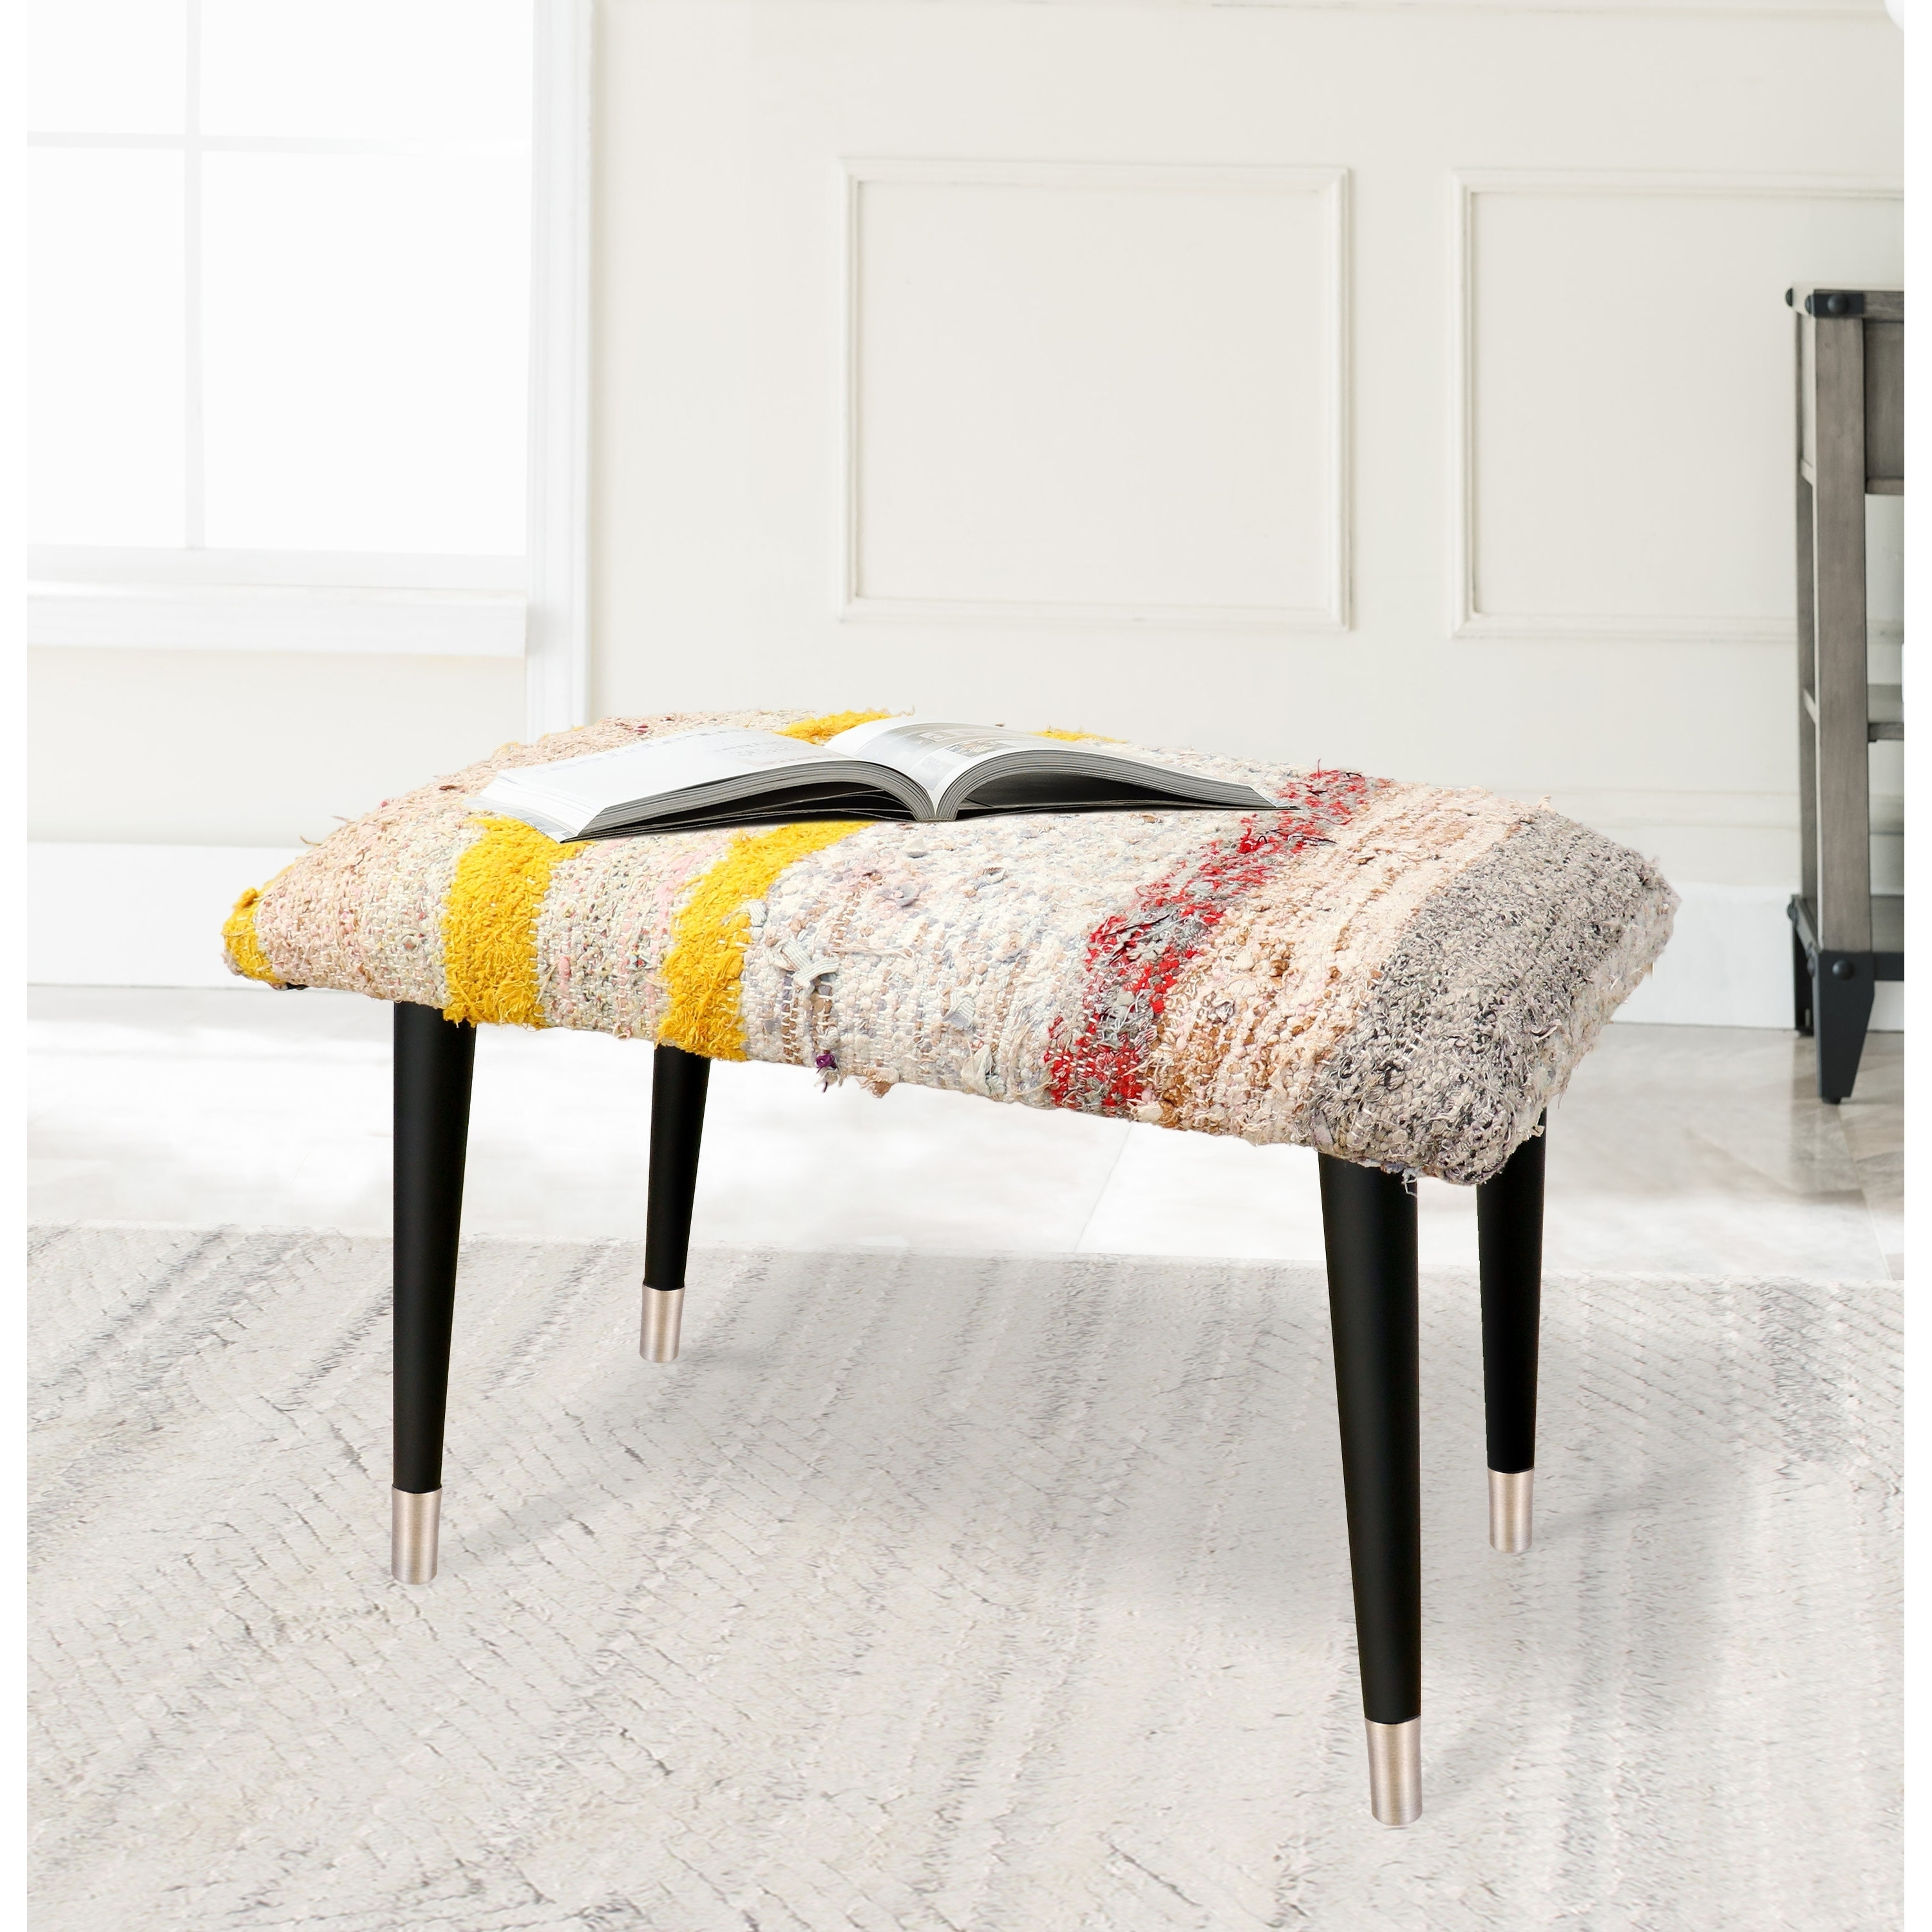 Pasargad Home Bosphorus Collection Vintage Kilim Cover Ottoman On Sale Overstock 29483070 Off White And Brown